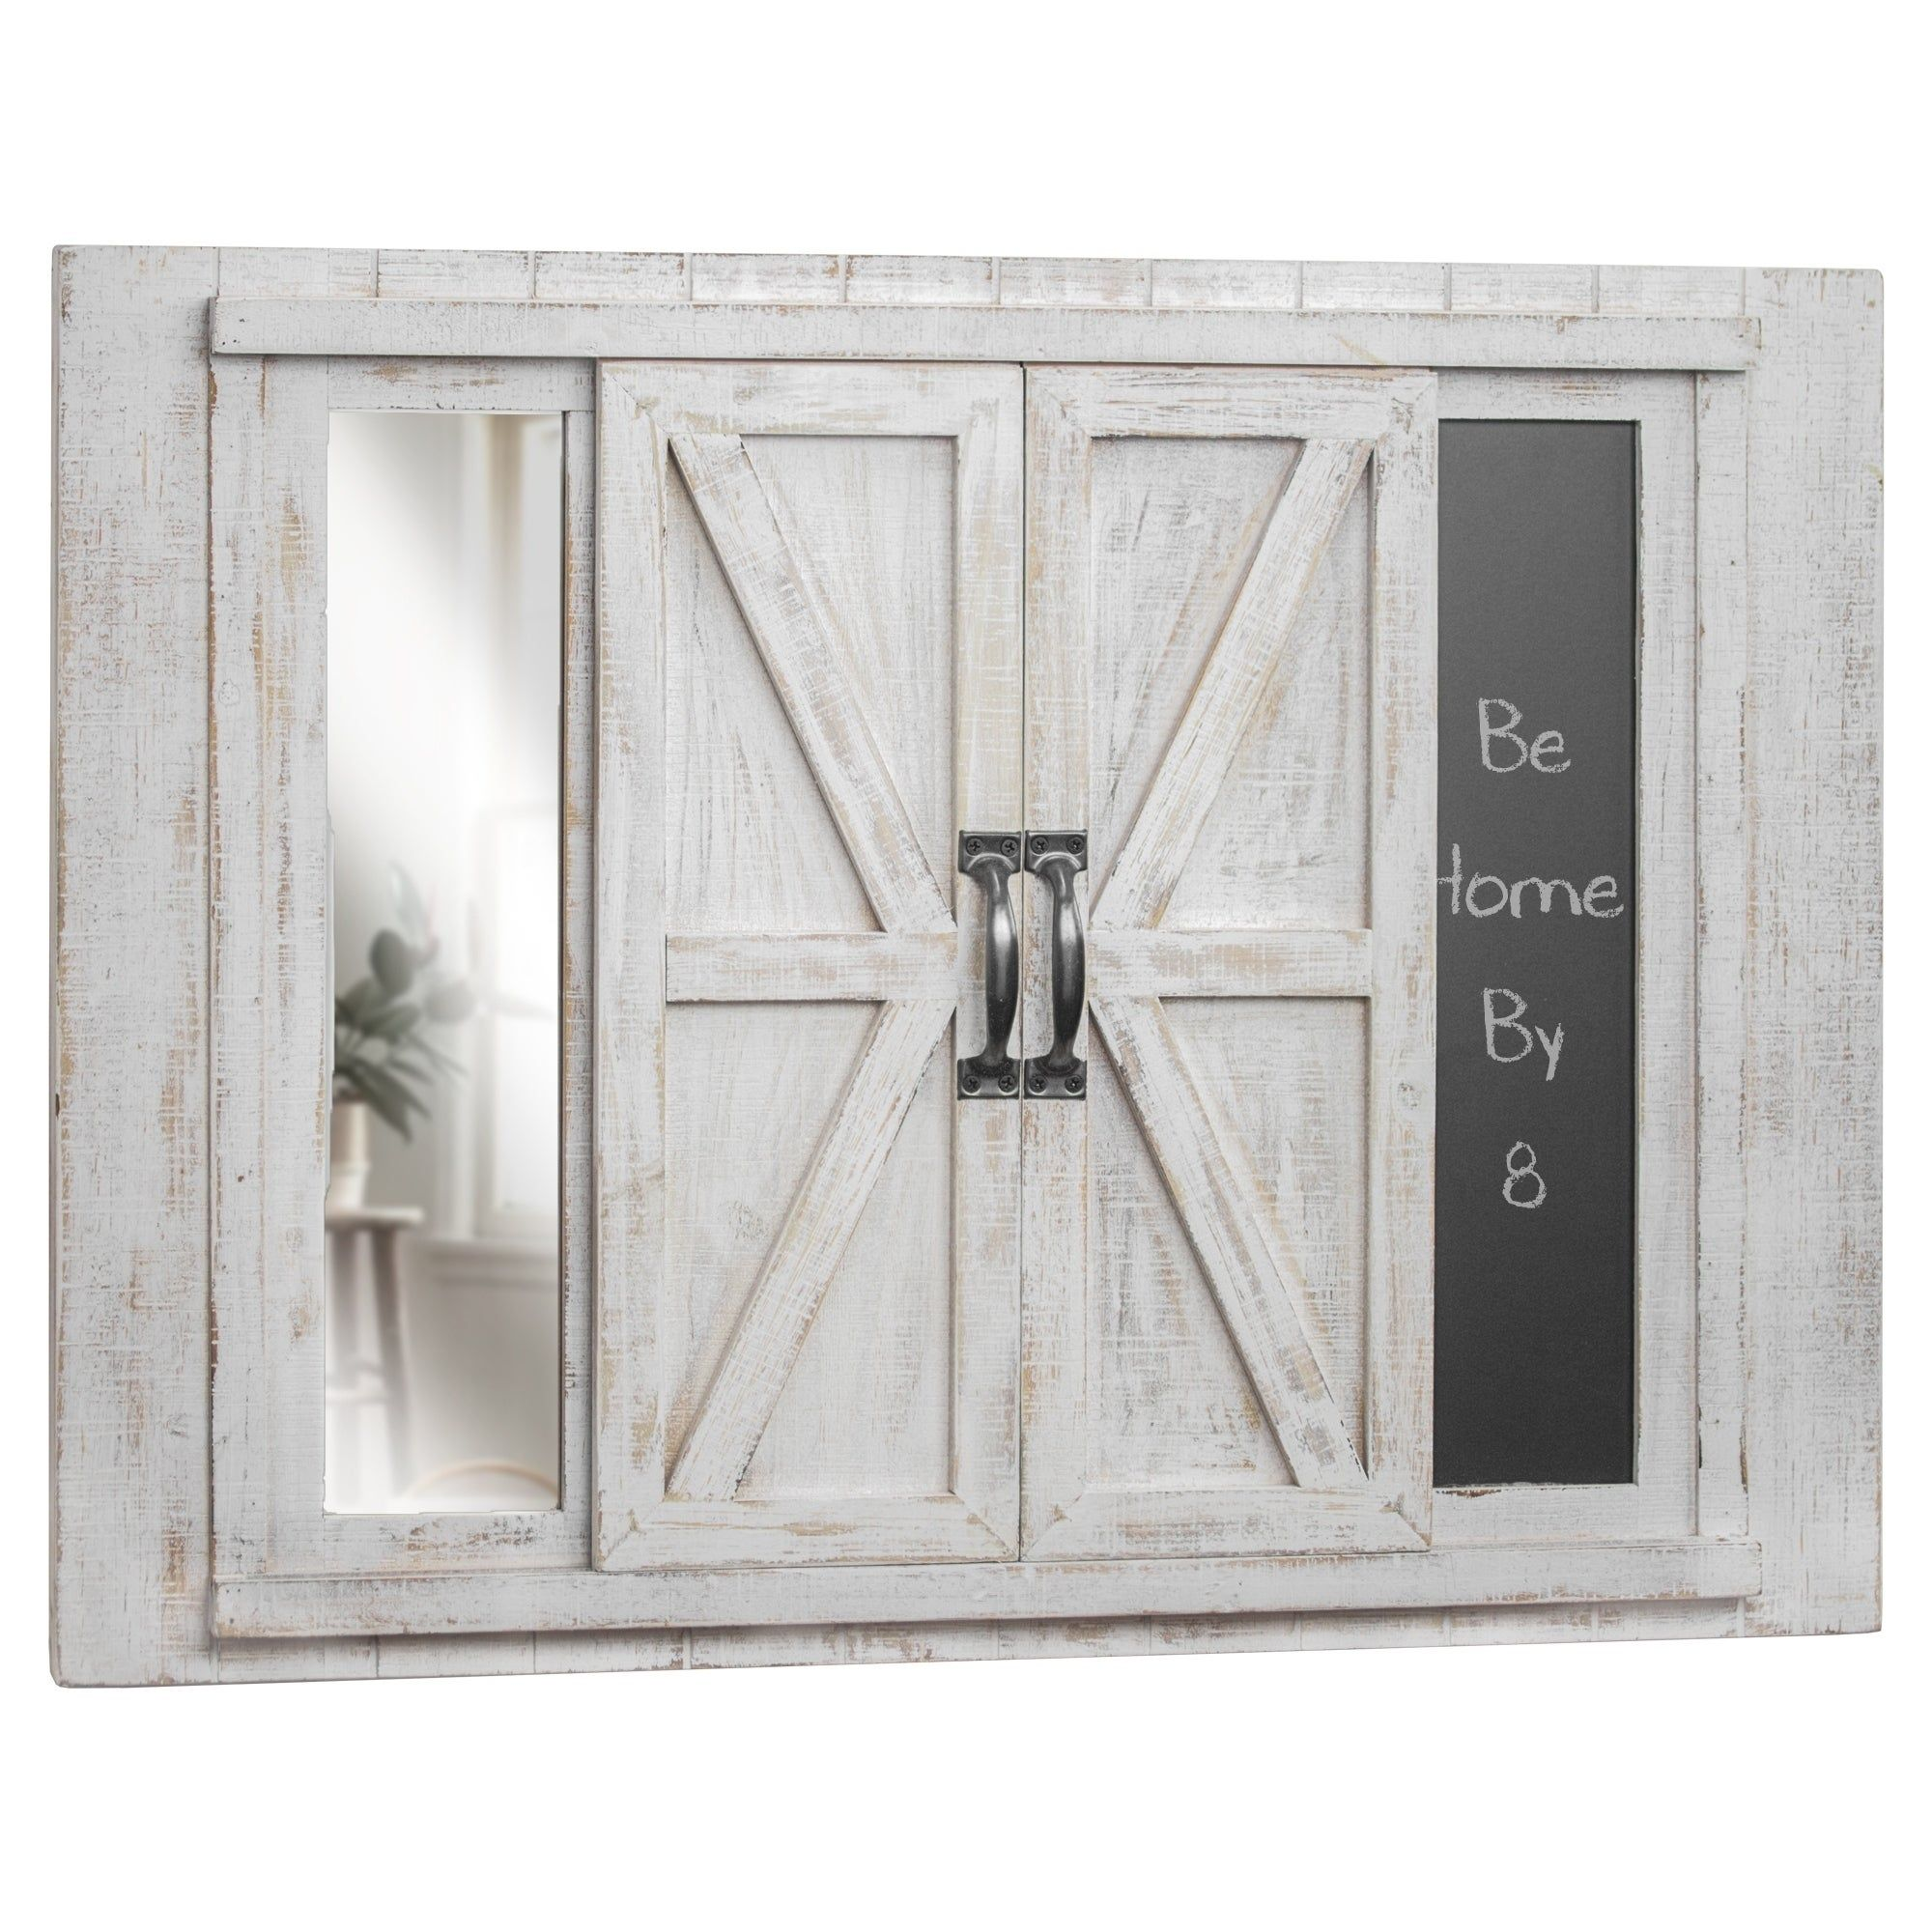 Photo Collage Picture Frame Chalkboard With Mirror White Mdf